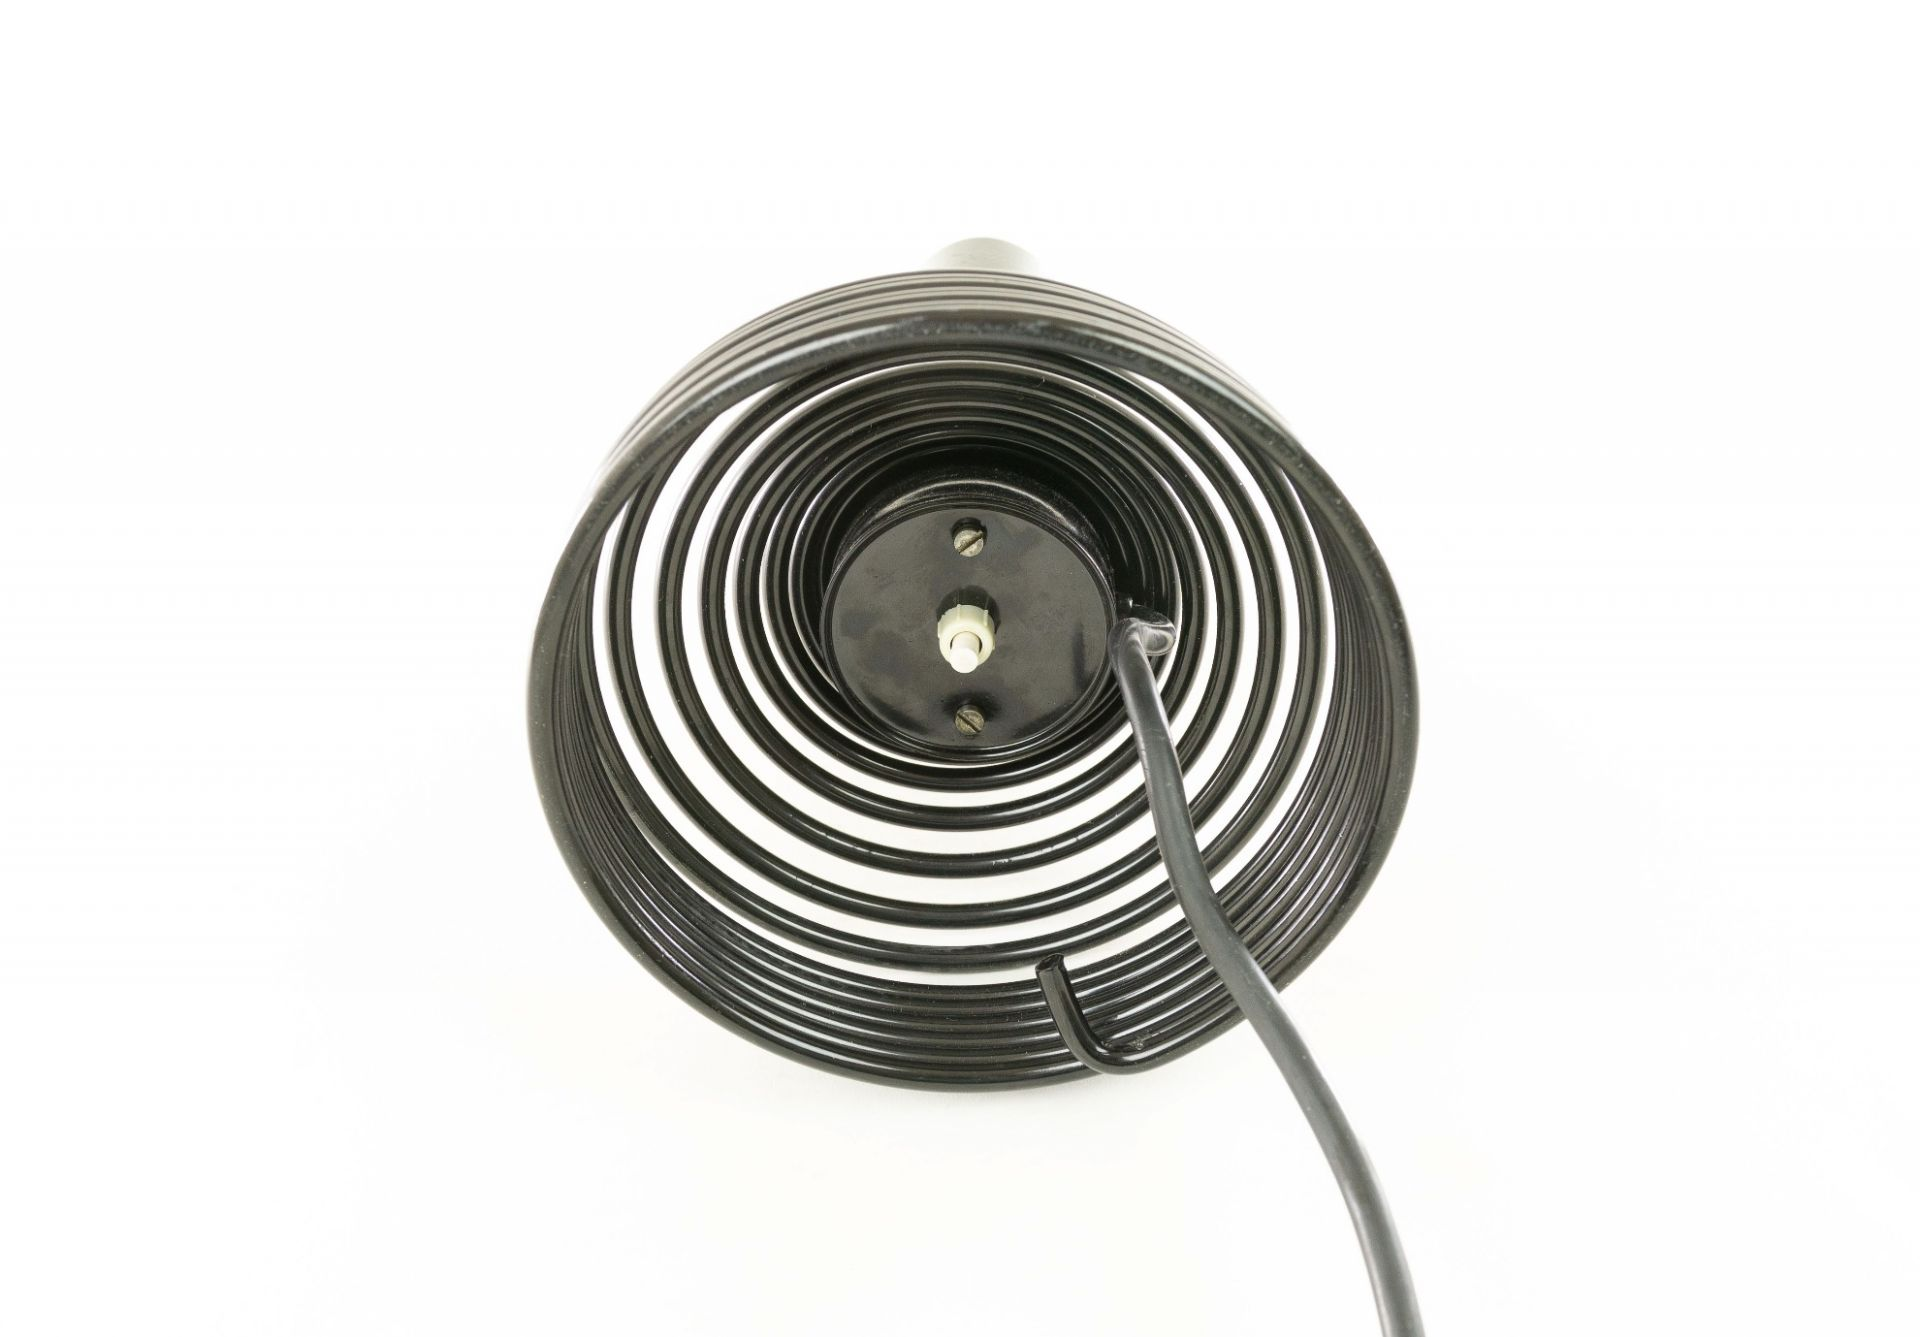 Spirale table lamp by Angelo Mangiarotti for Candle, 1970s